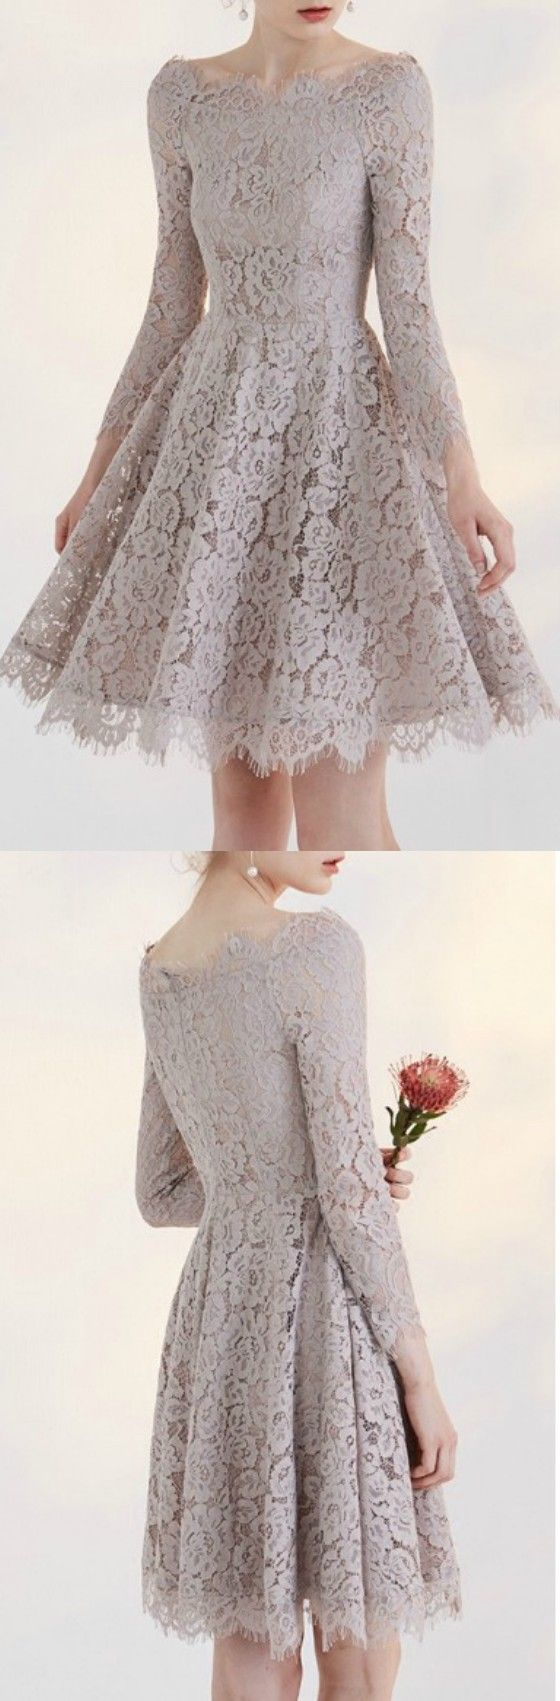 Charming Full Lace A-line Off the Shoulder Party Dress Homecoming Dress Prom Dress with 3/4 Sleeve